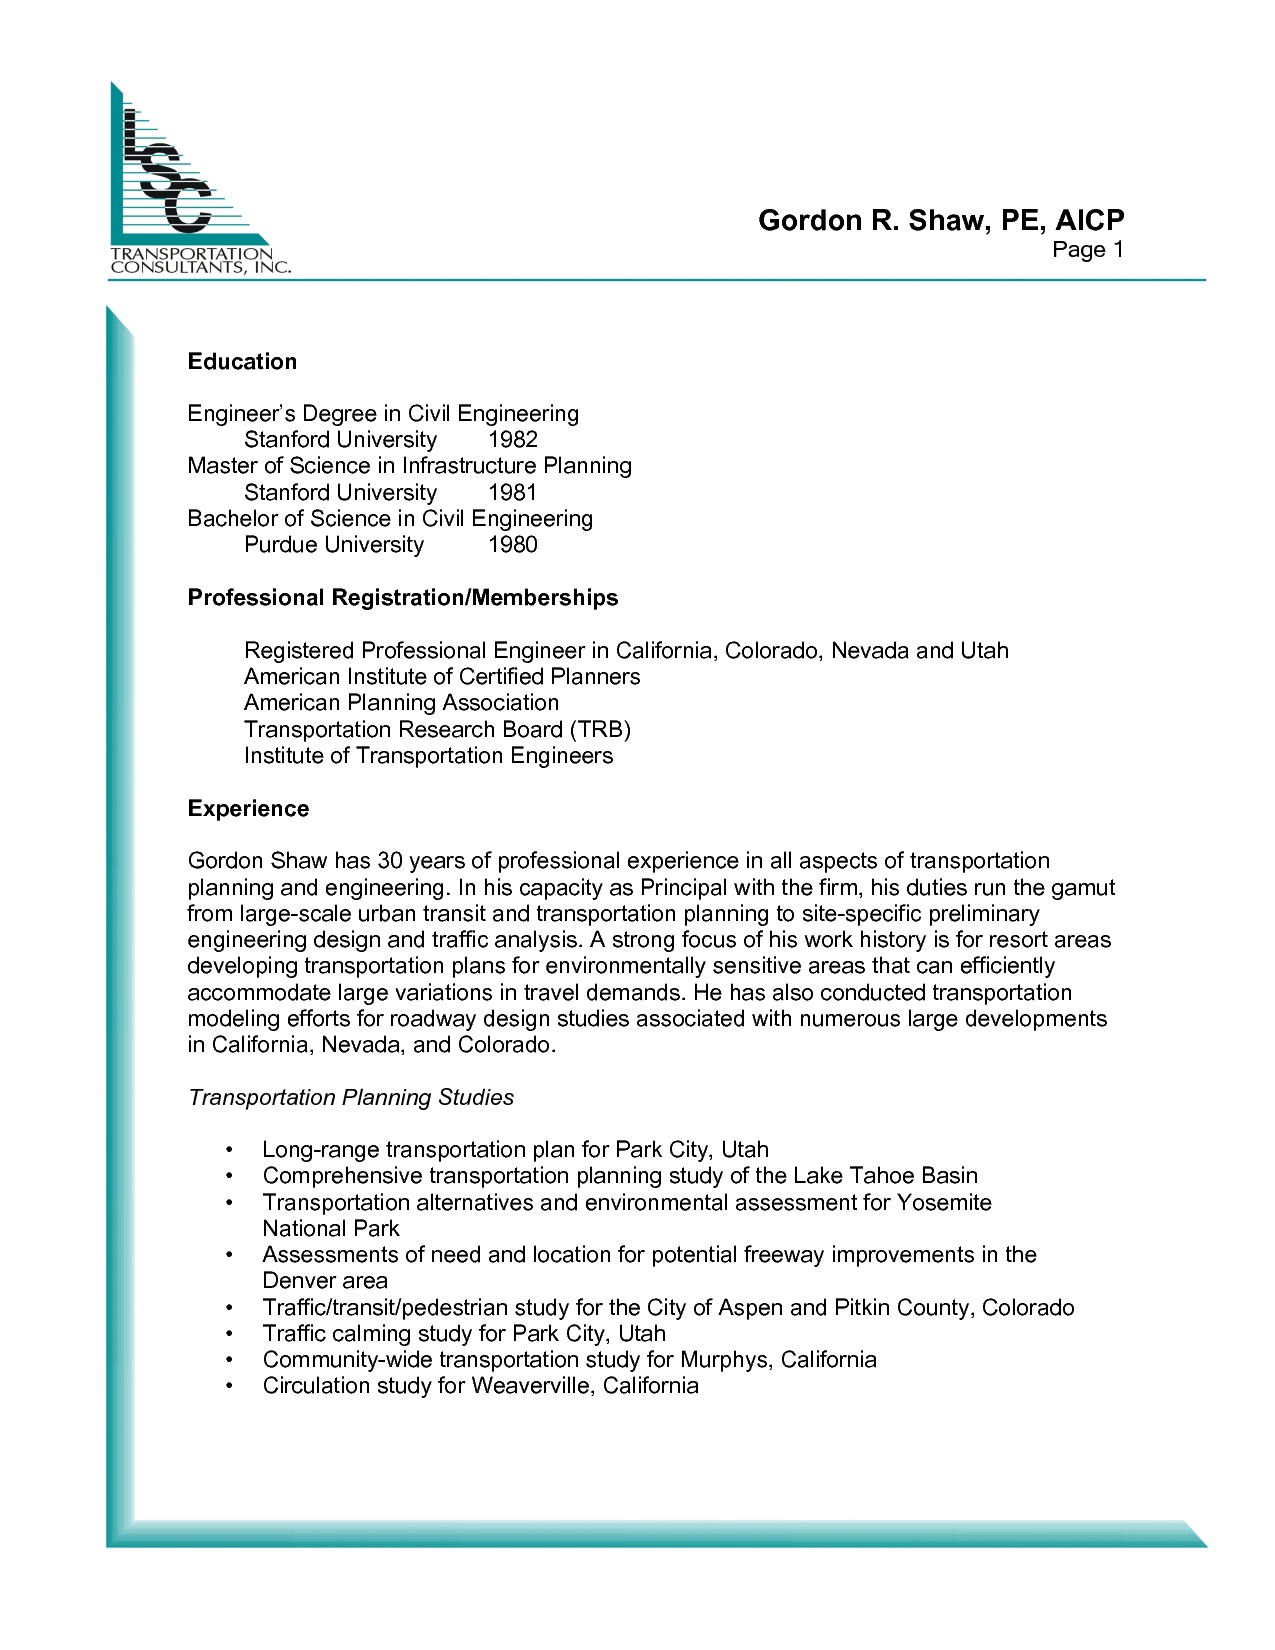 Resume Resume Format In Word For Civil Engineers civil engineer resume sample httpwww resumecareer infocivil templates wordresume